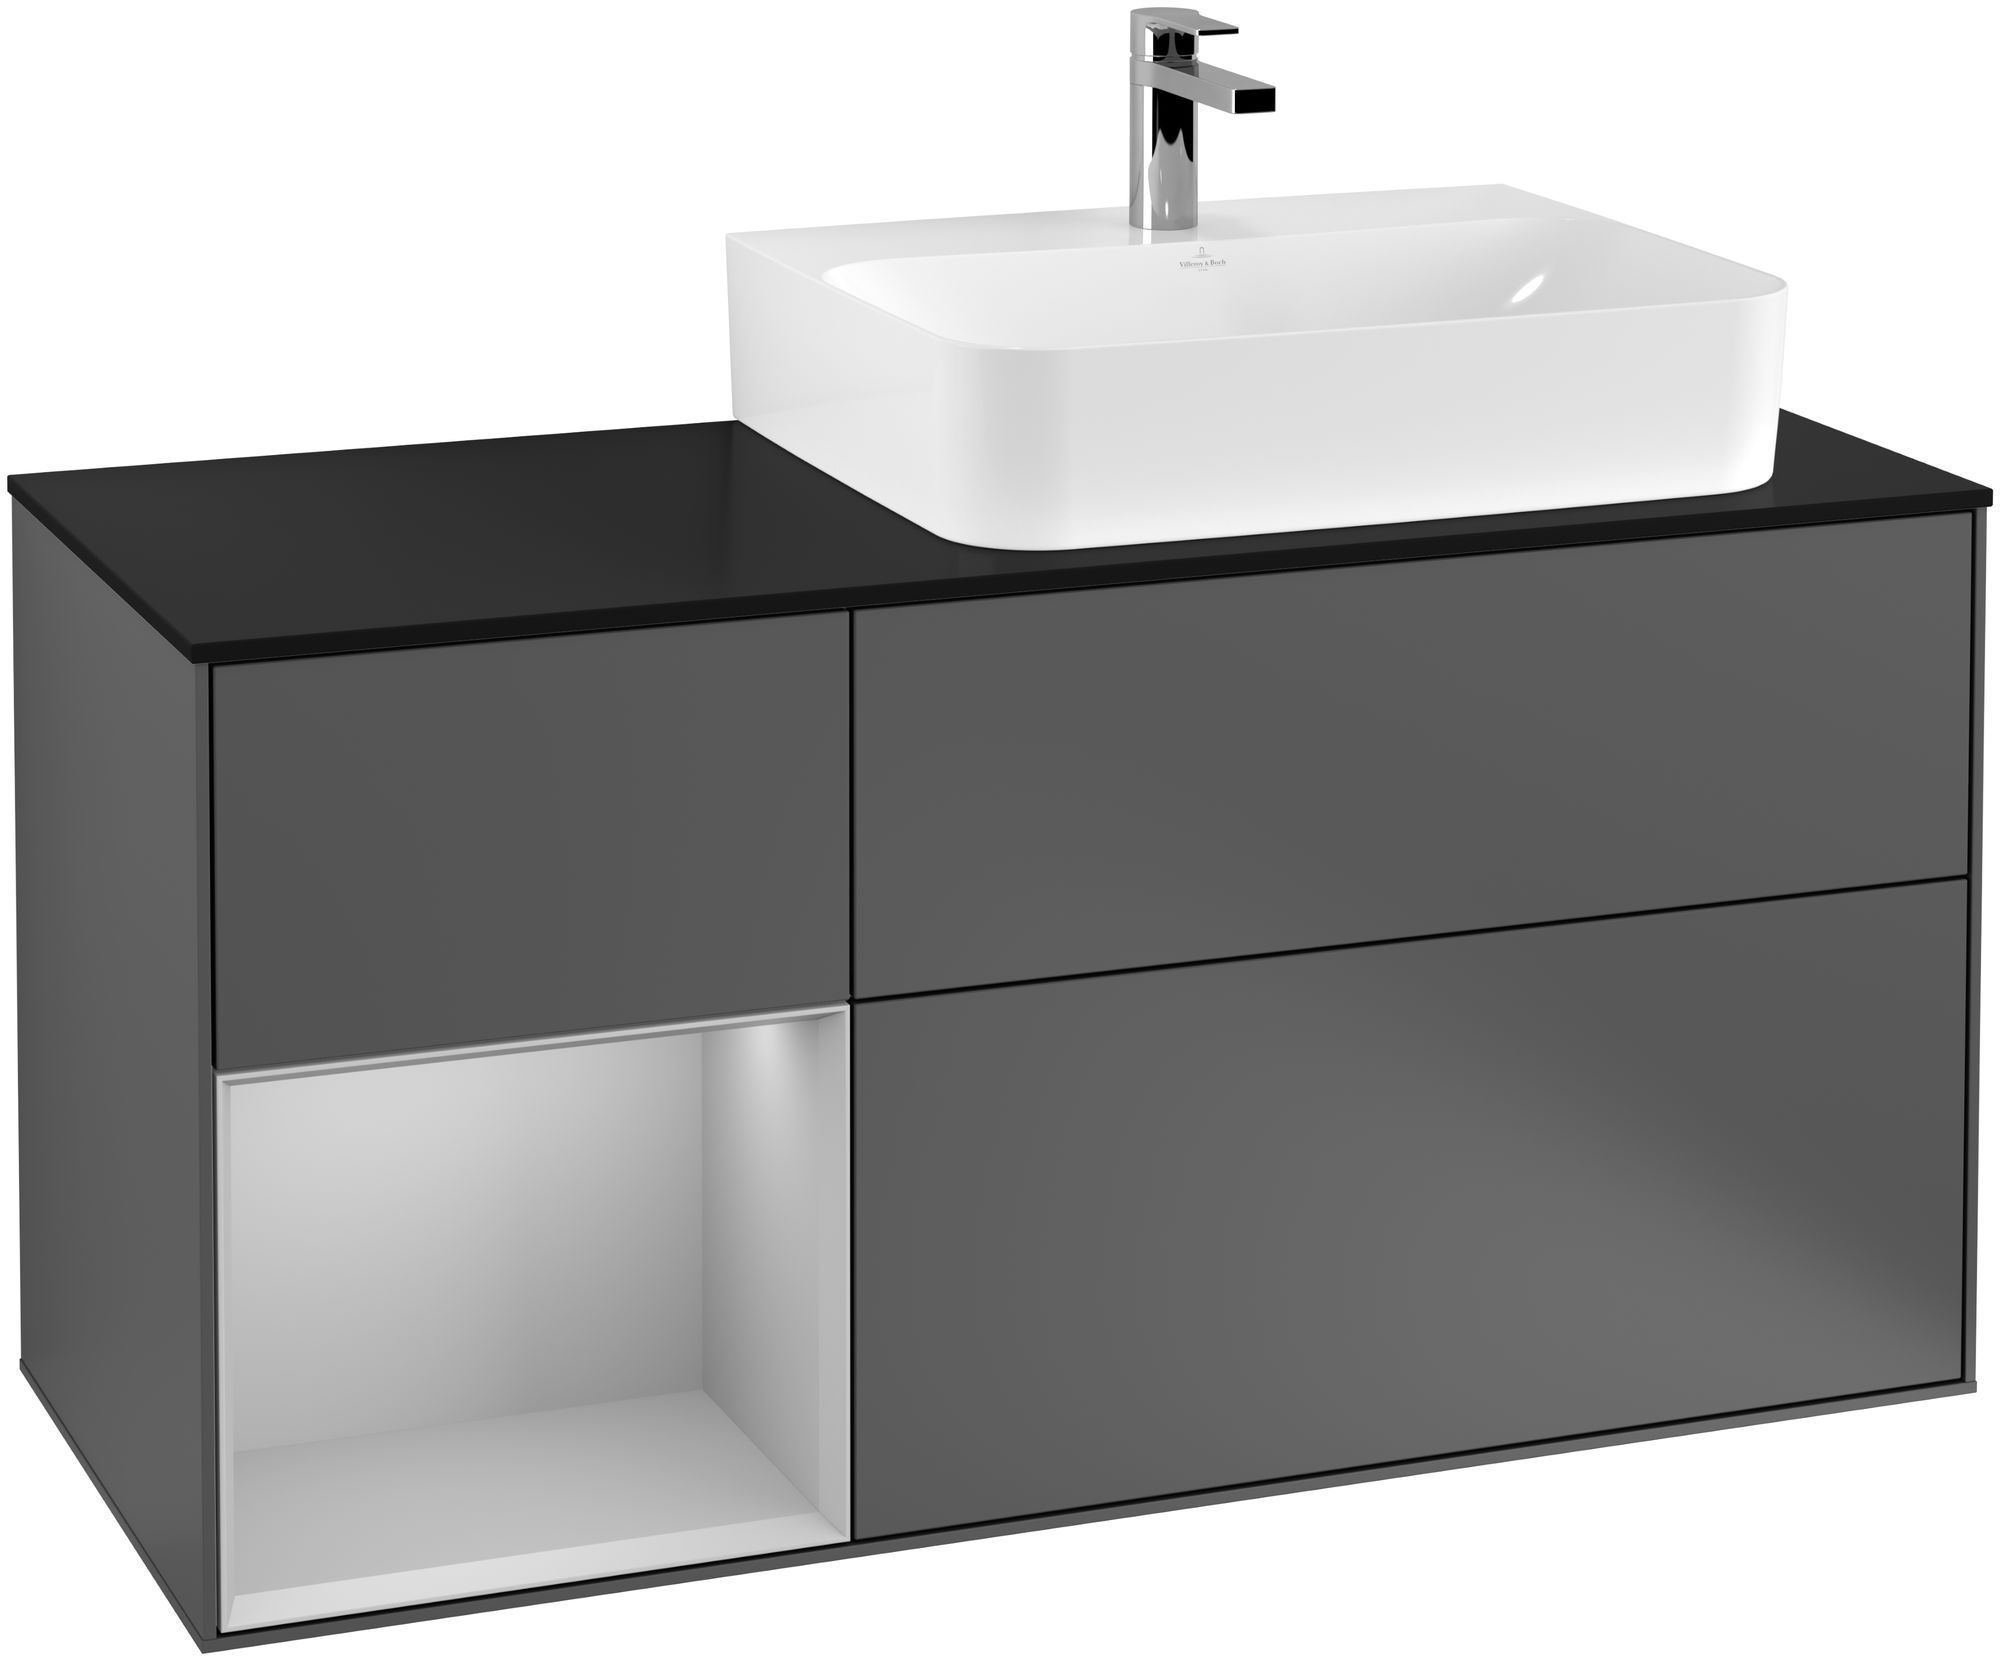 Villeroy & Boch Finion G14 Waschtischunterschrank mit Regalelement 3 Auszüge für WT rechts LED-Beleuchtung B:120xH:60,3xT:50,1cm Front, Korpus: Anthracite Matt, Regal: Light Grey Matt, Glasplatte: Black Matt G142GJGK